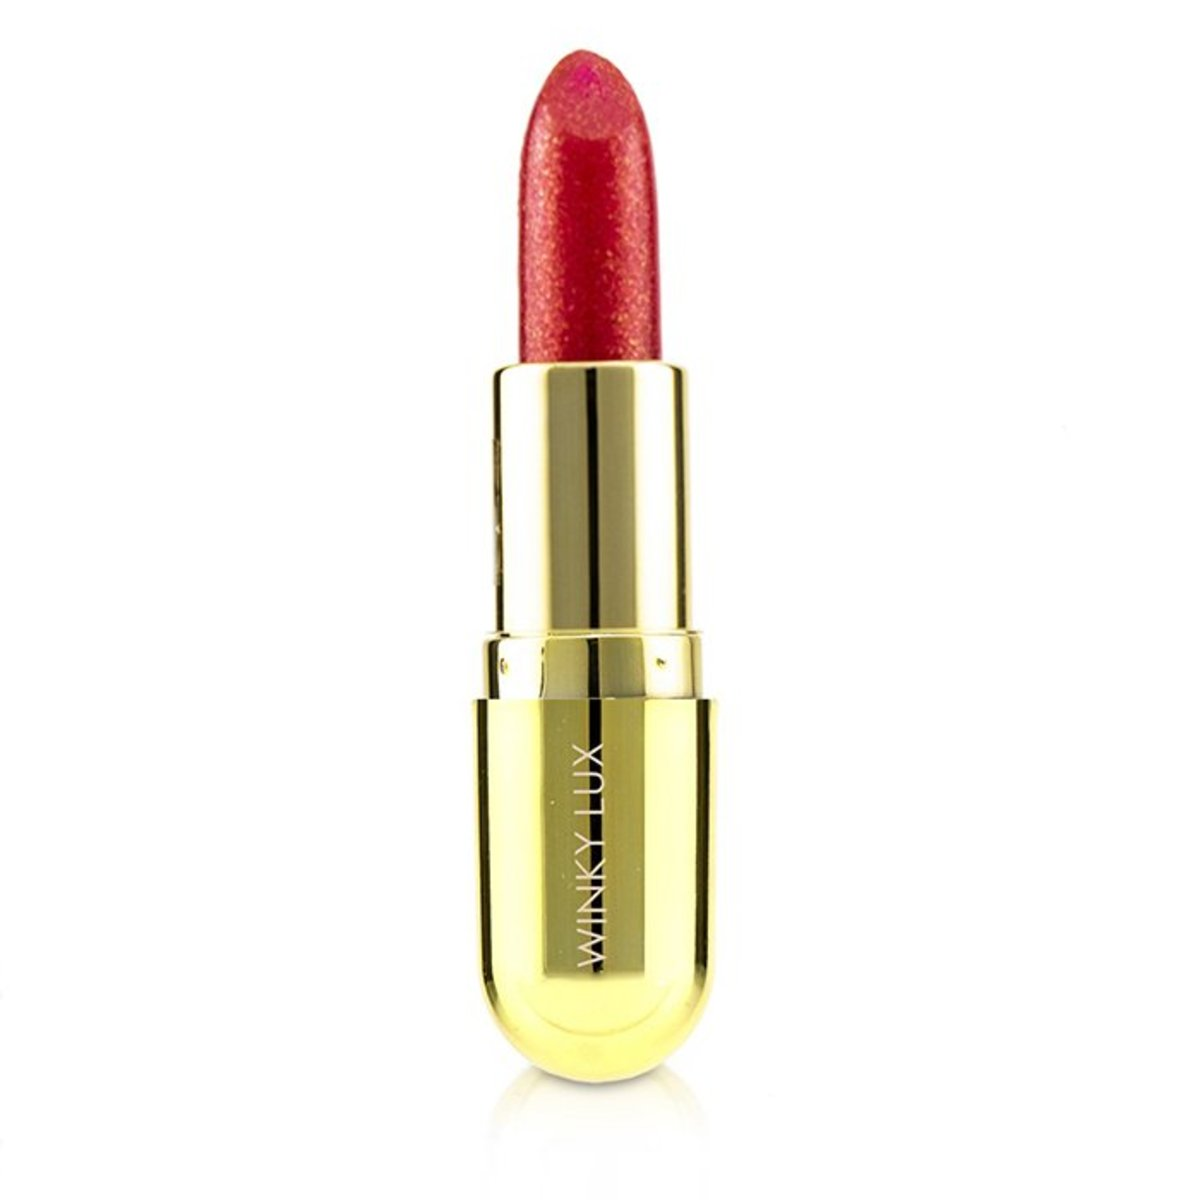 Glimmer pH Balm - # Ruby 021669 3.6g [Parallel Import]